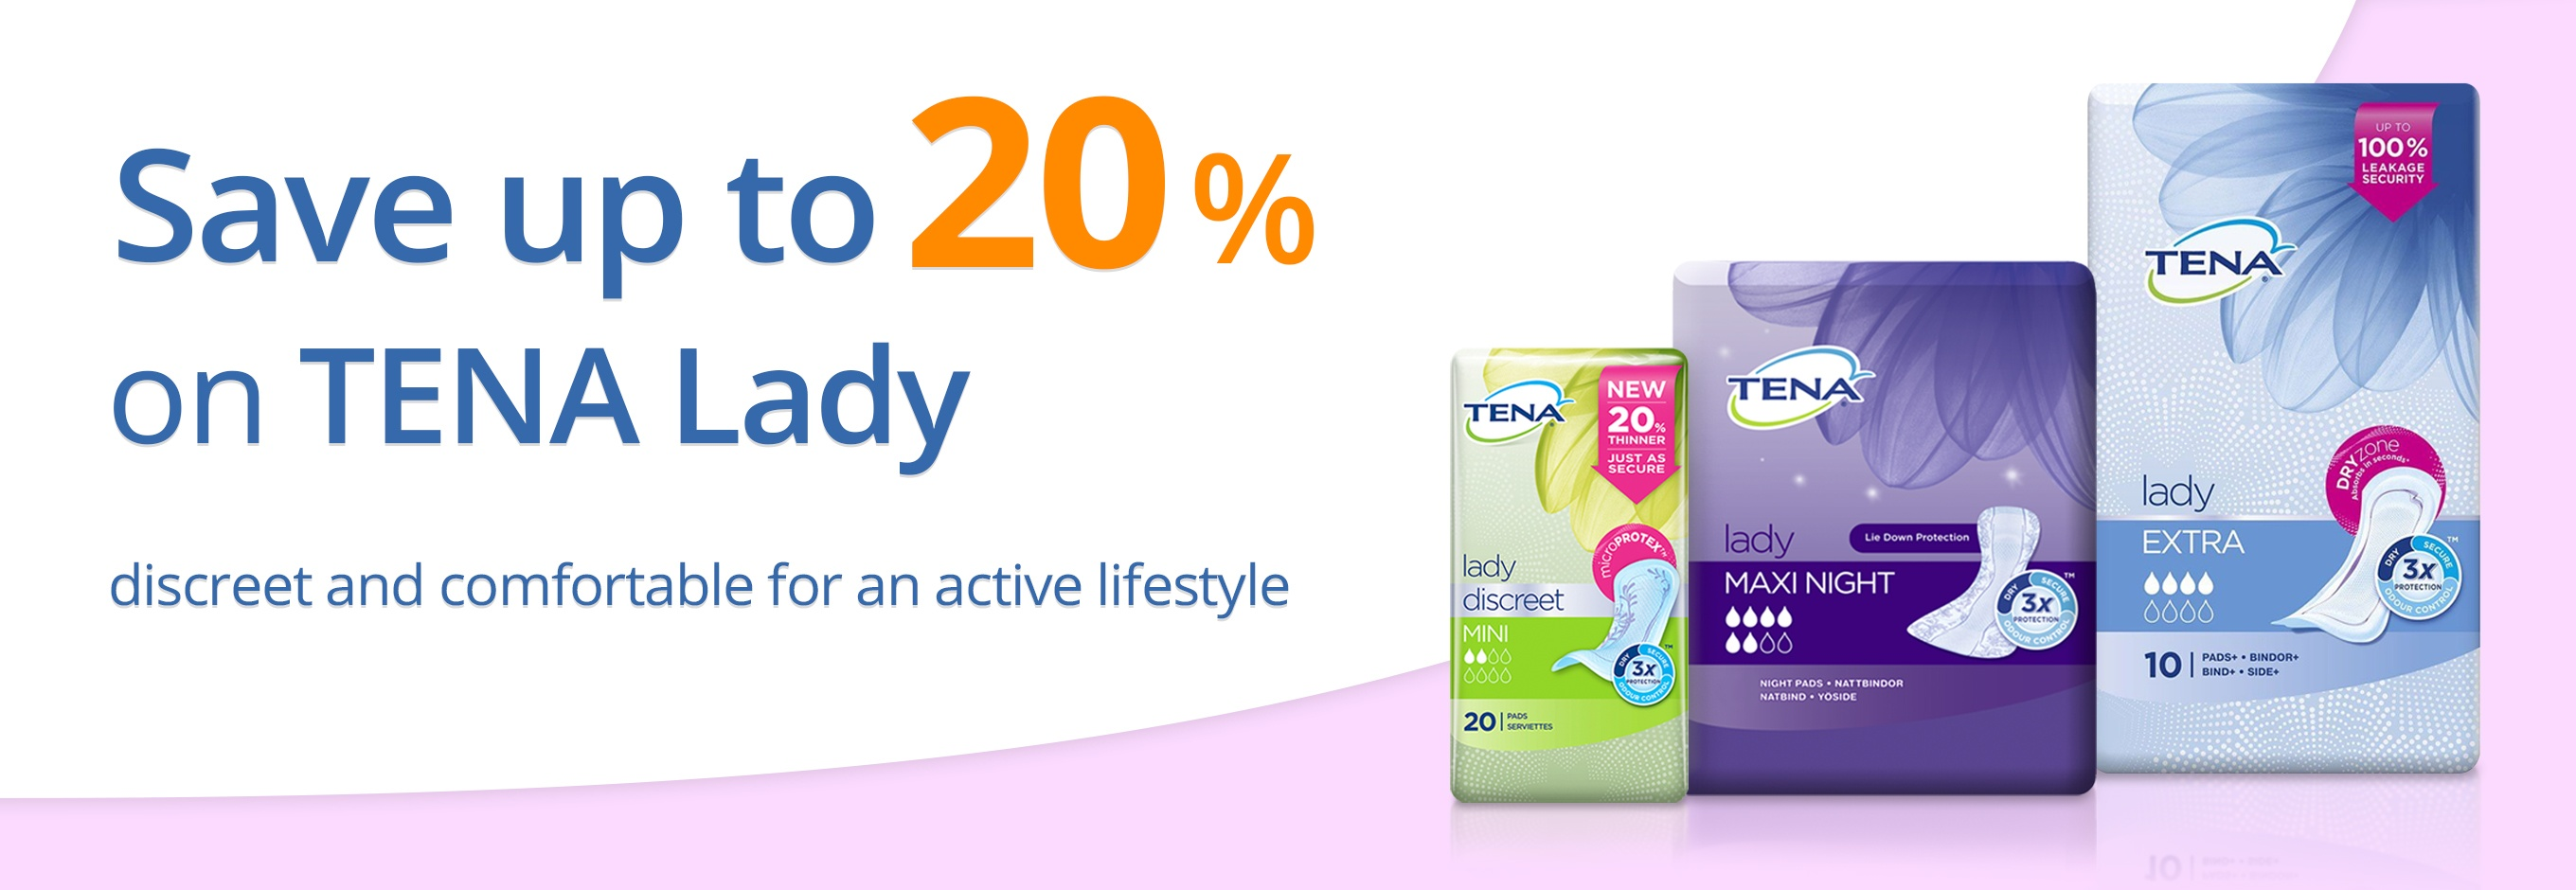 Save up to 20% on TENA Lady